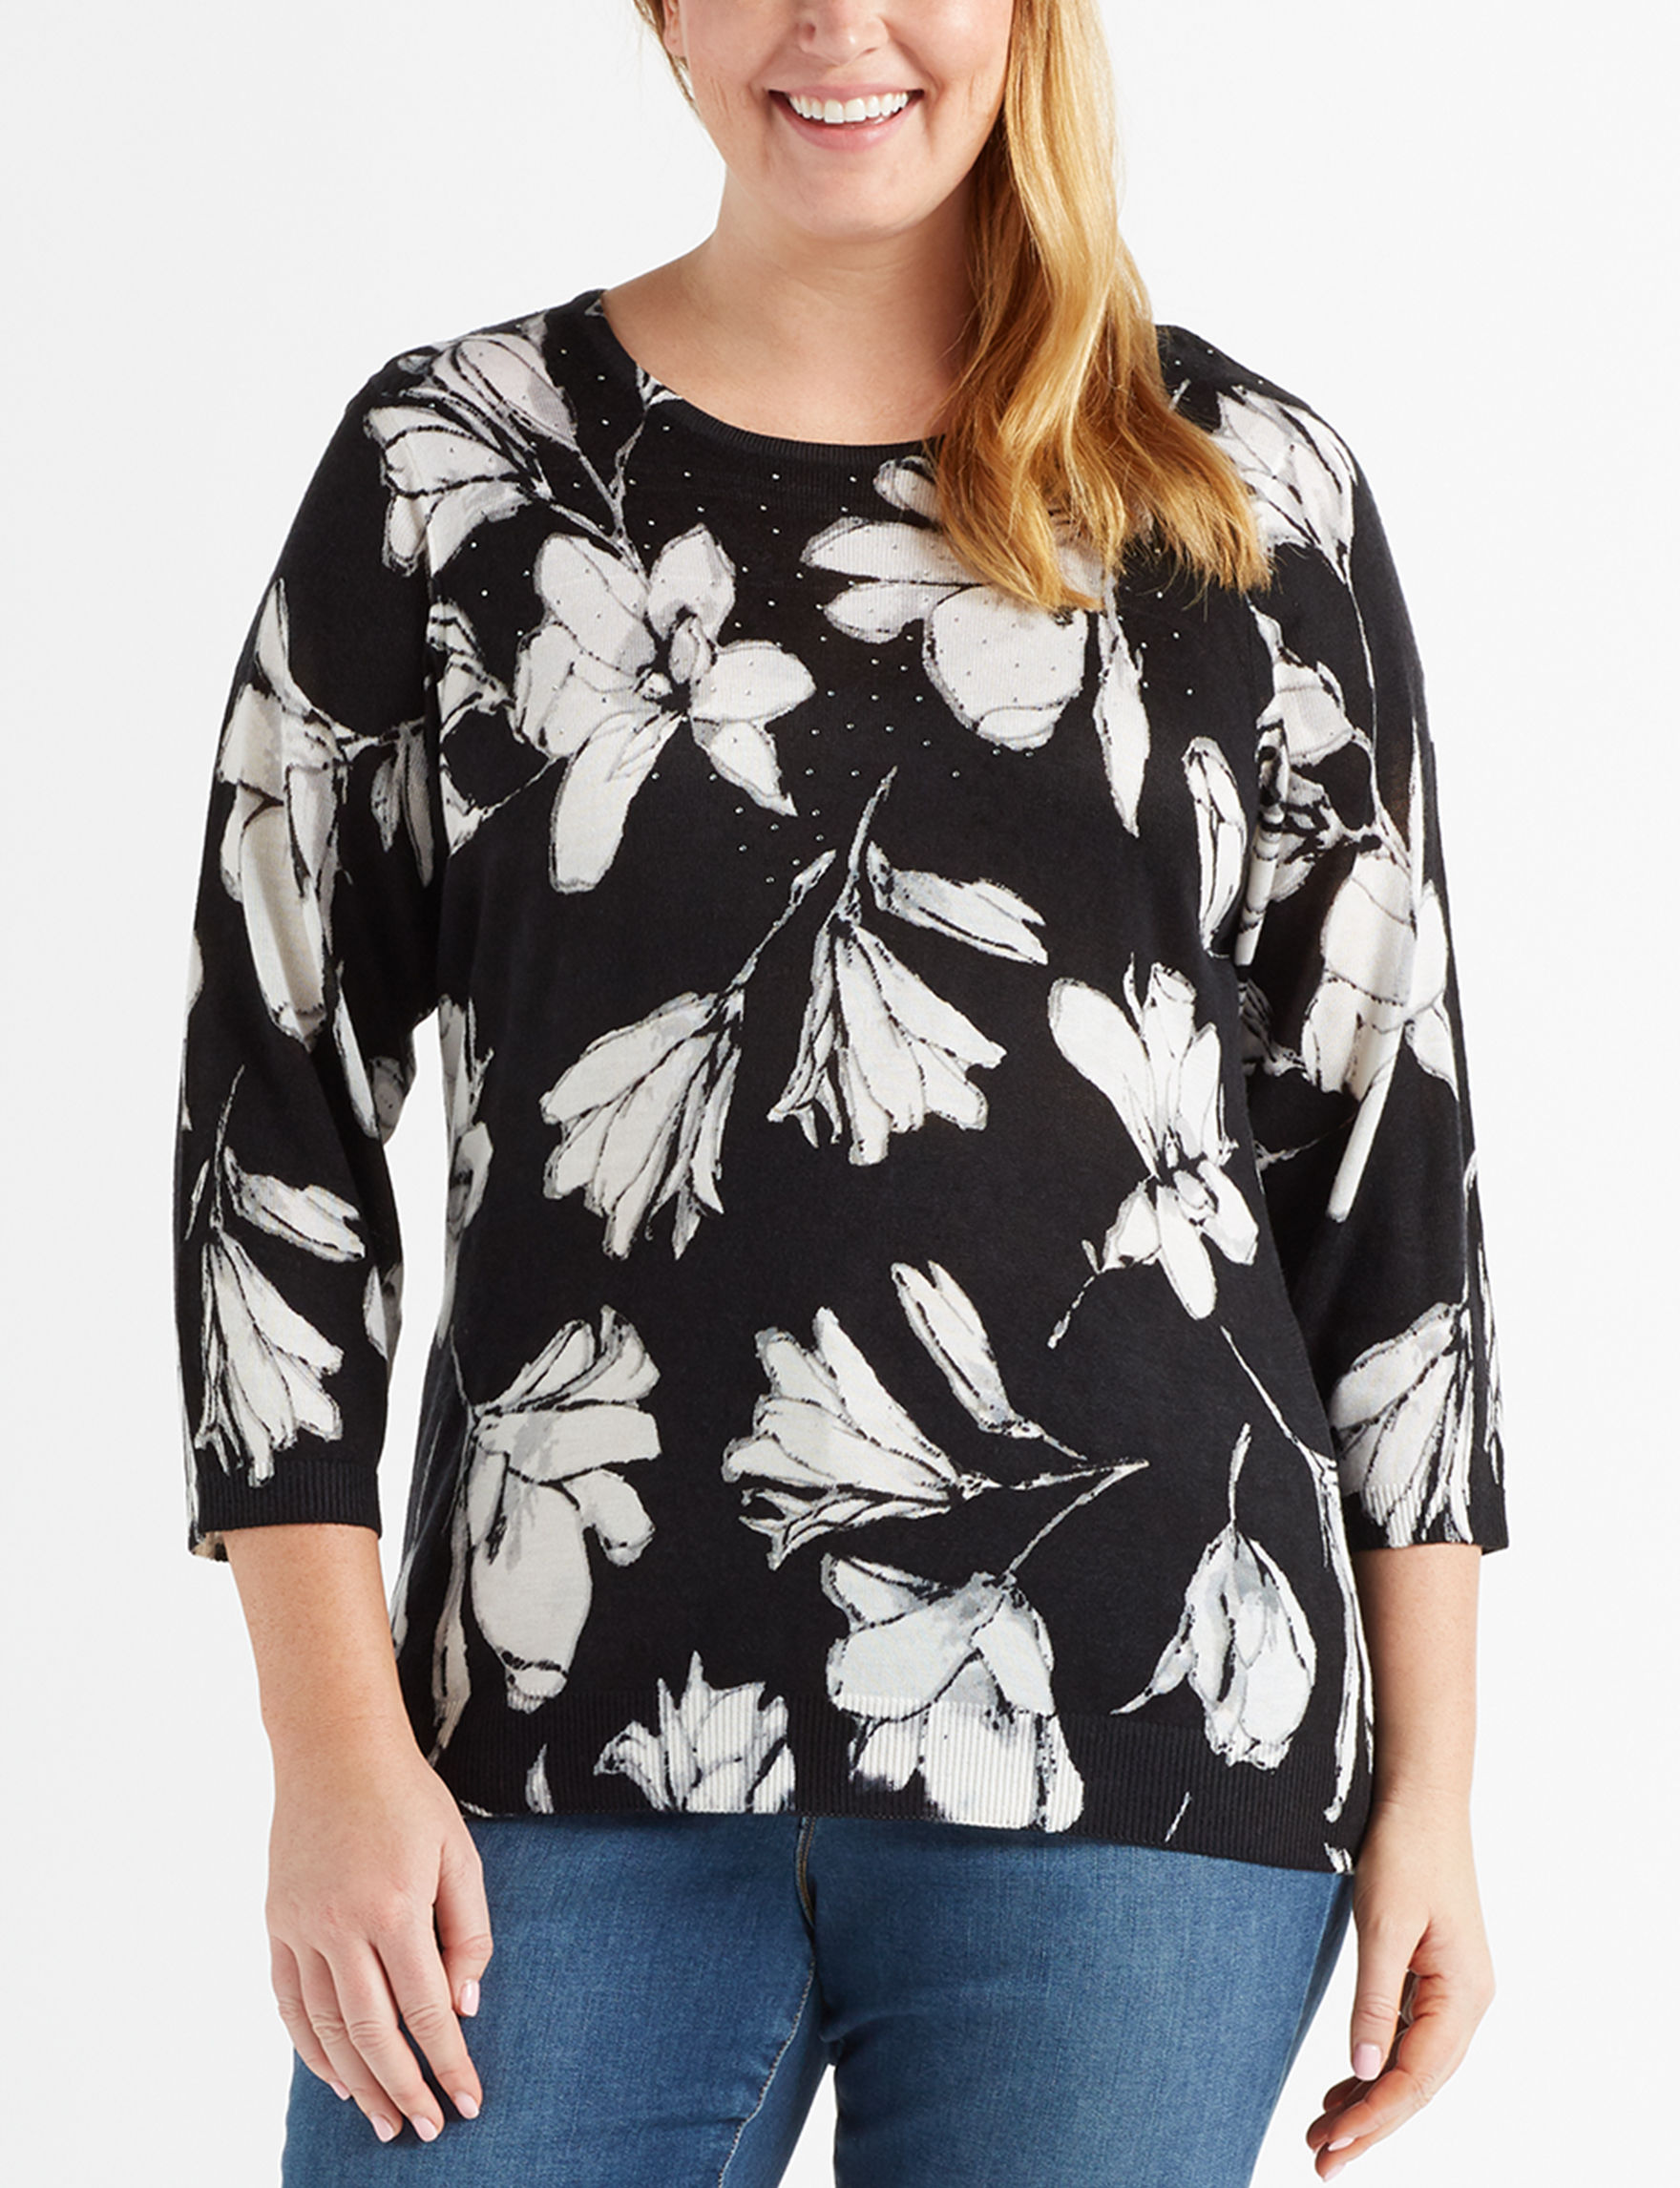 Cathy Daniels Black / White Shirts & Blouses